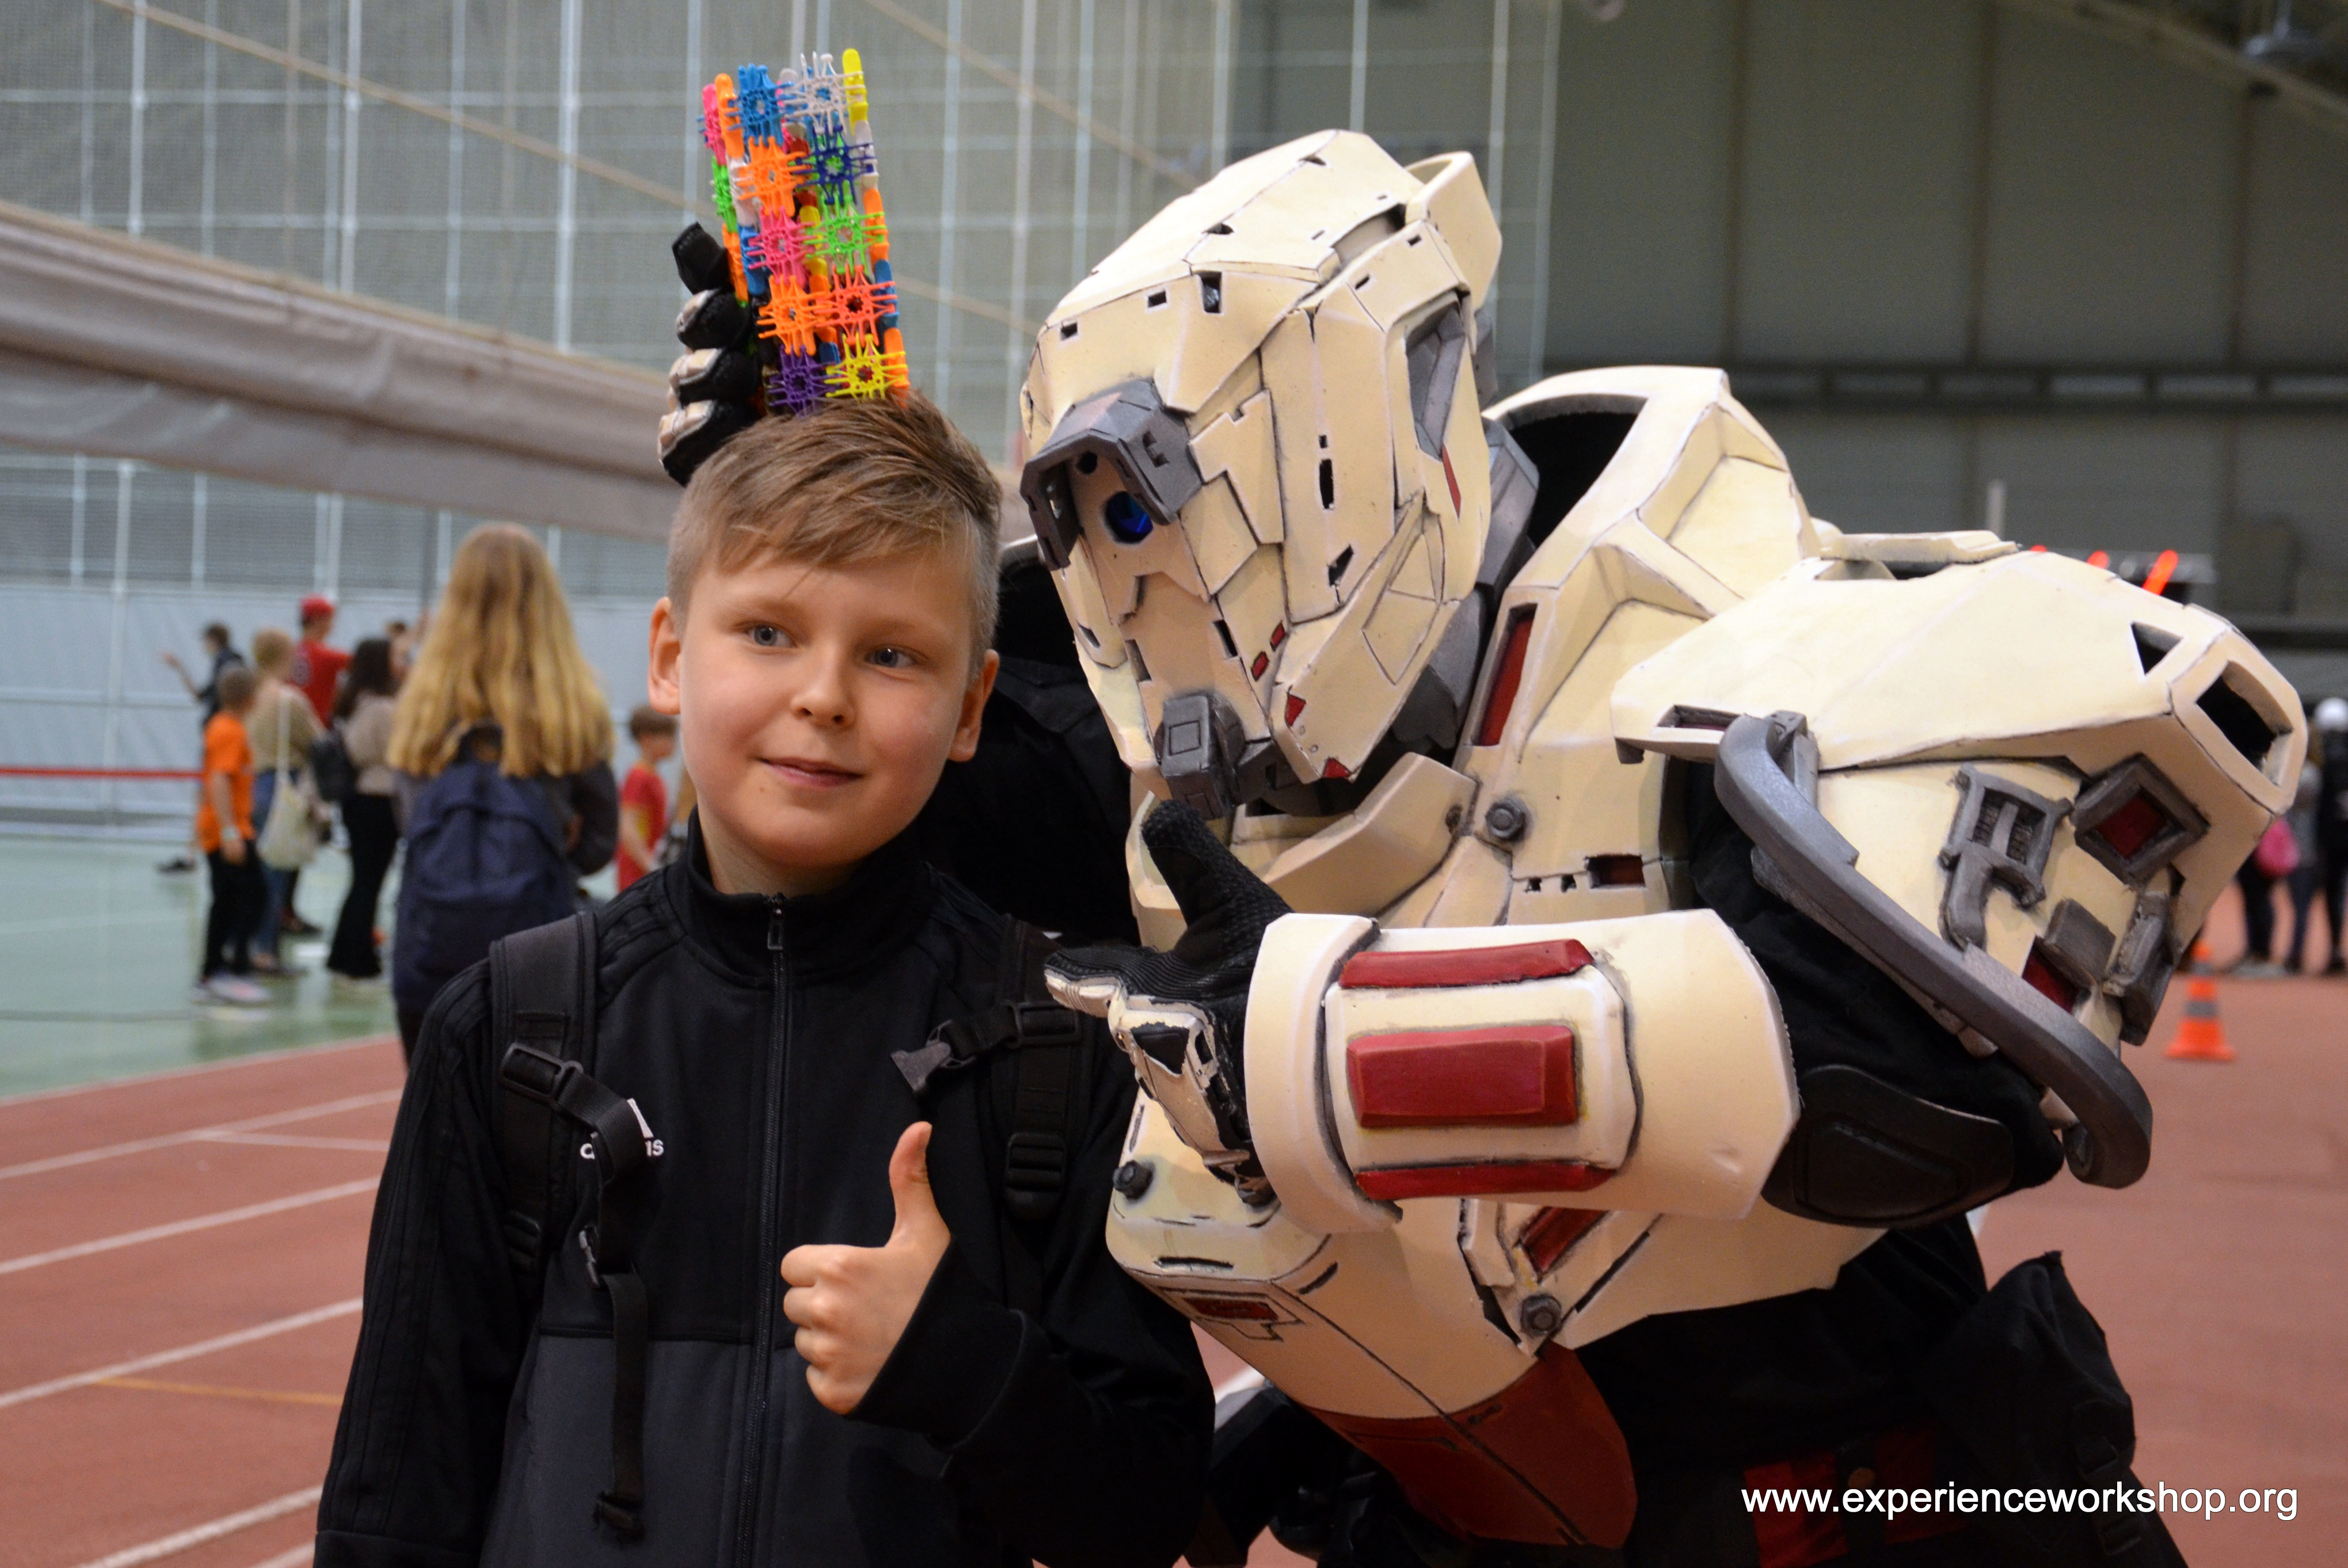 Outerspace warriors celebrating schools in Finland